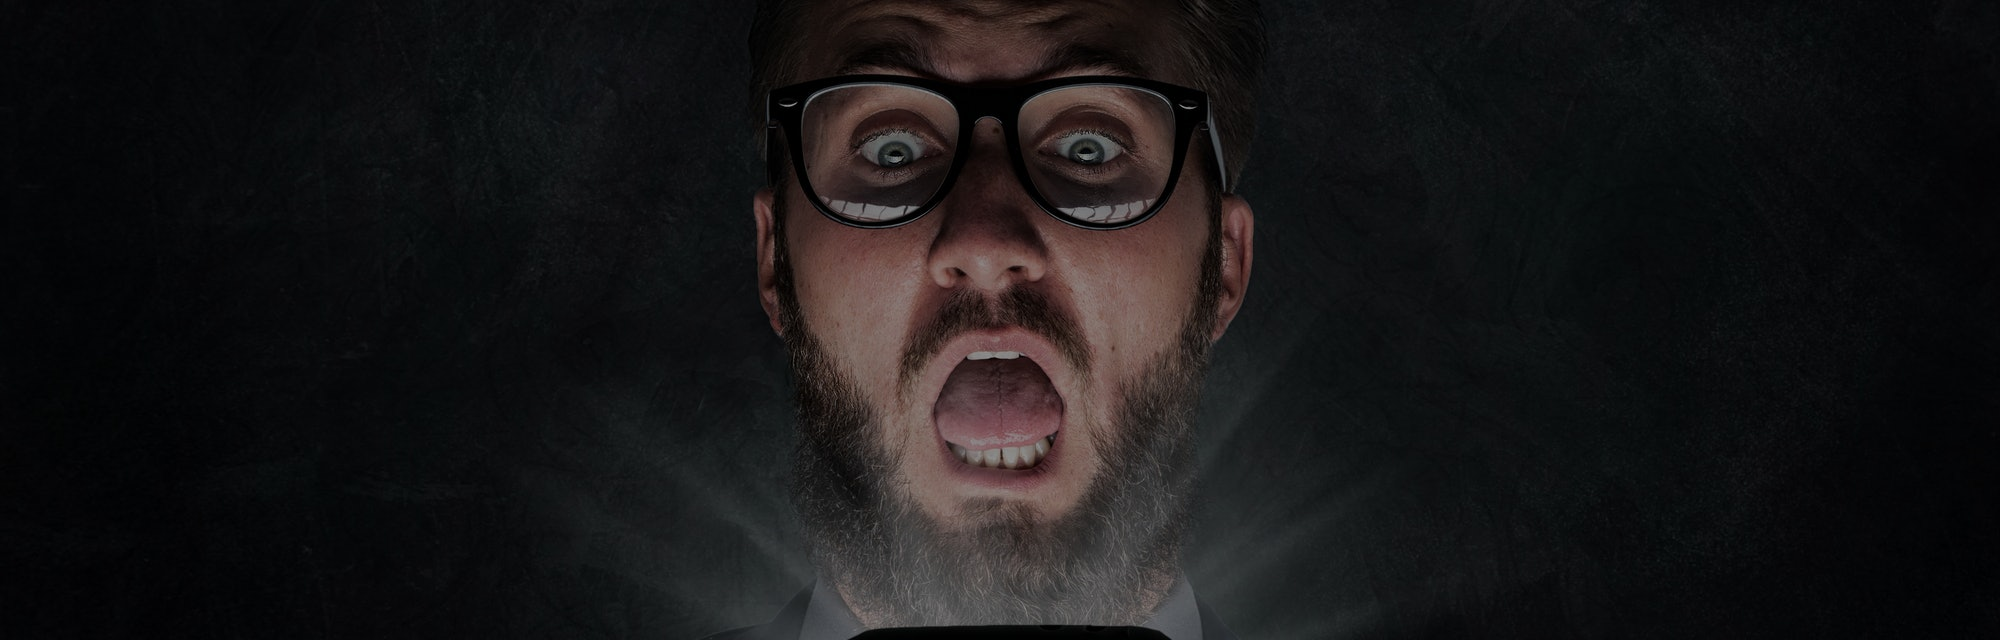 Nerd with glasses is shocked after reading a sms